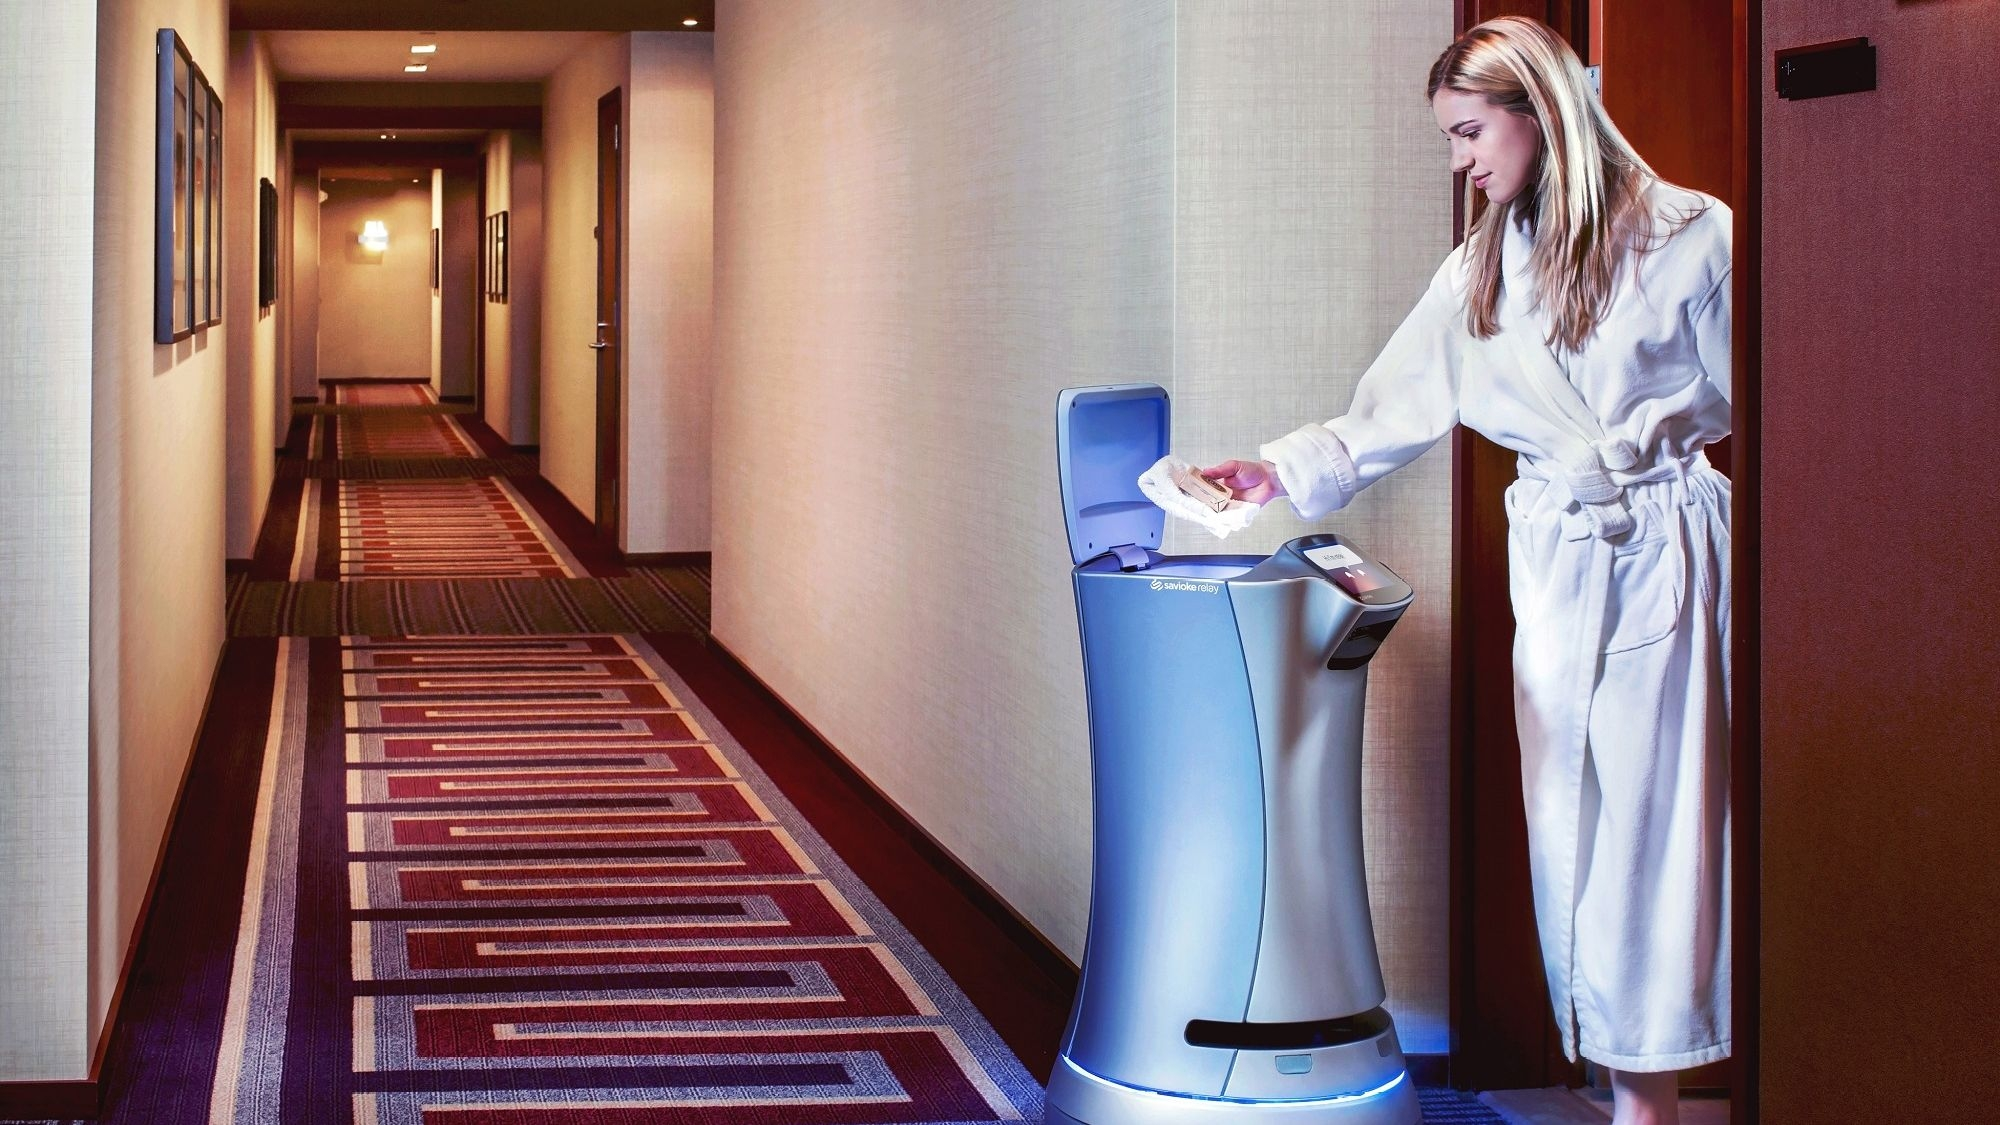 Robots Take Over Room-Service in Some Hotels, No Tips Expected